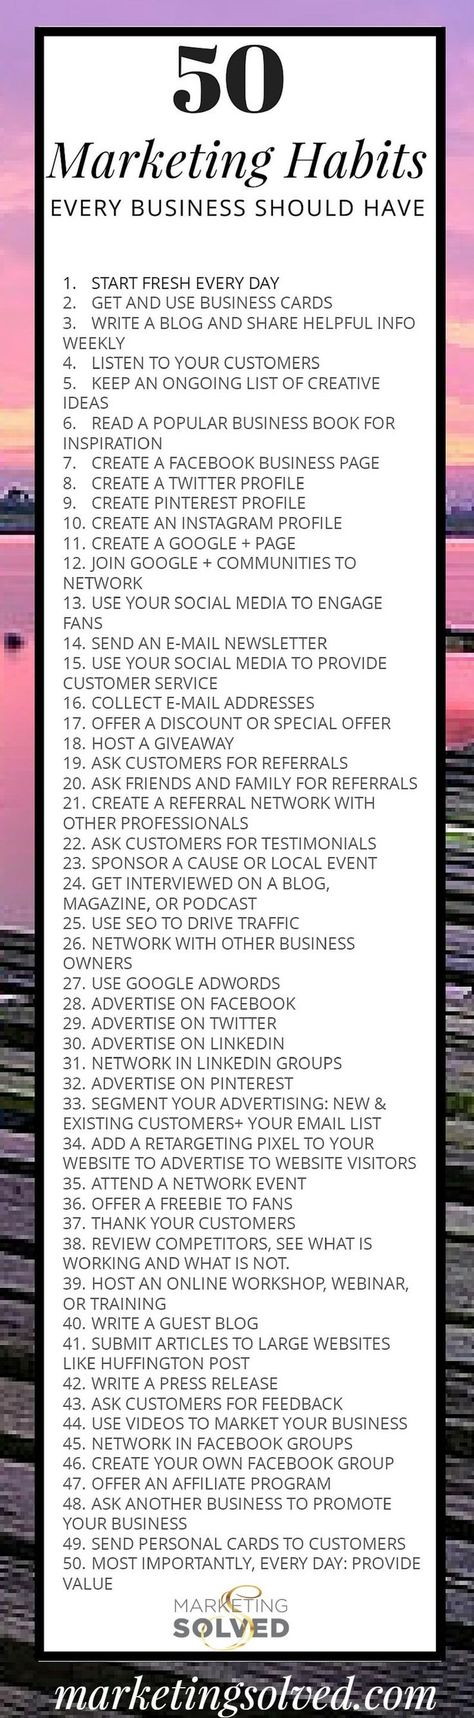 50 Marketing Habits Every Business Should Have